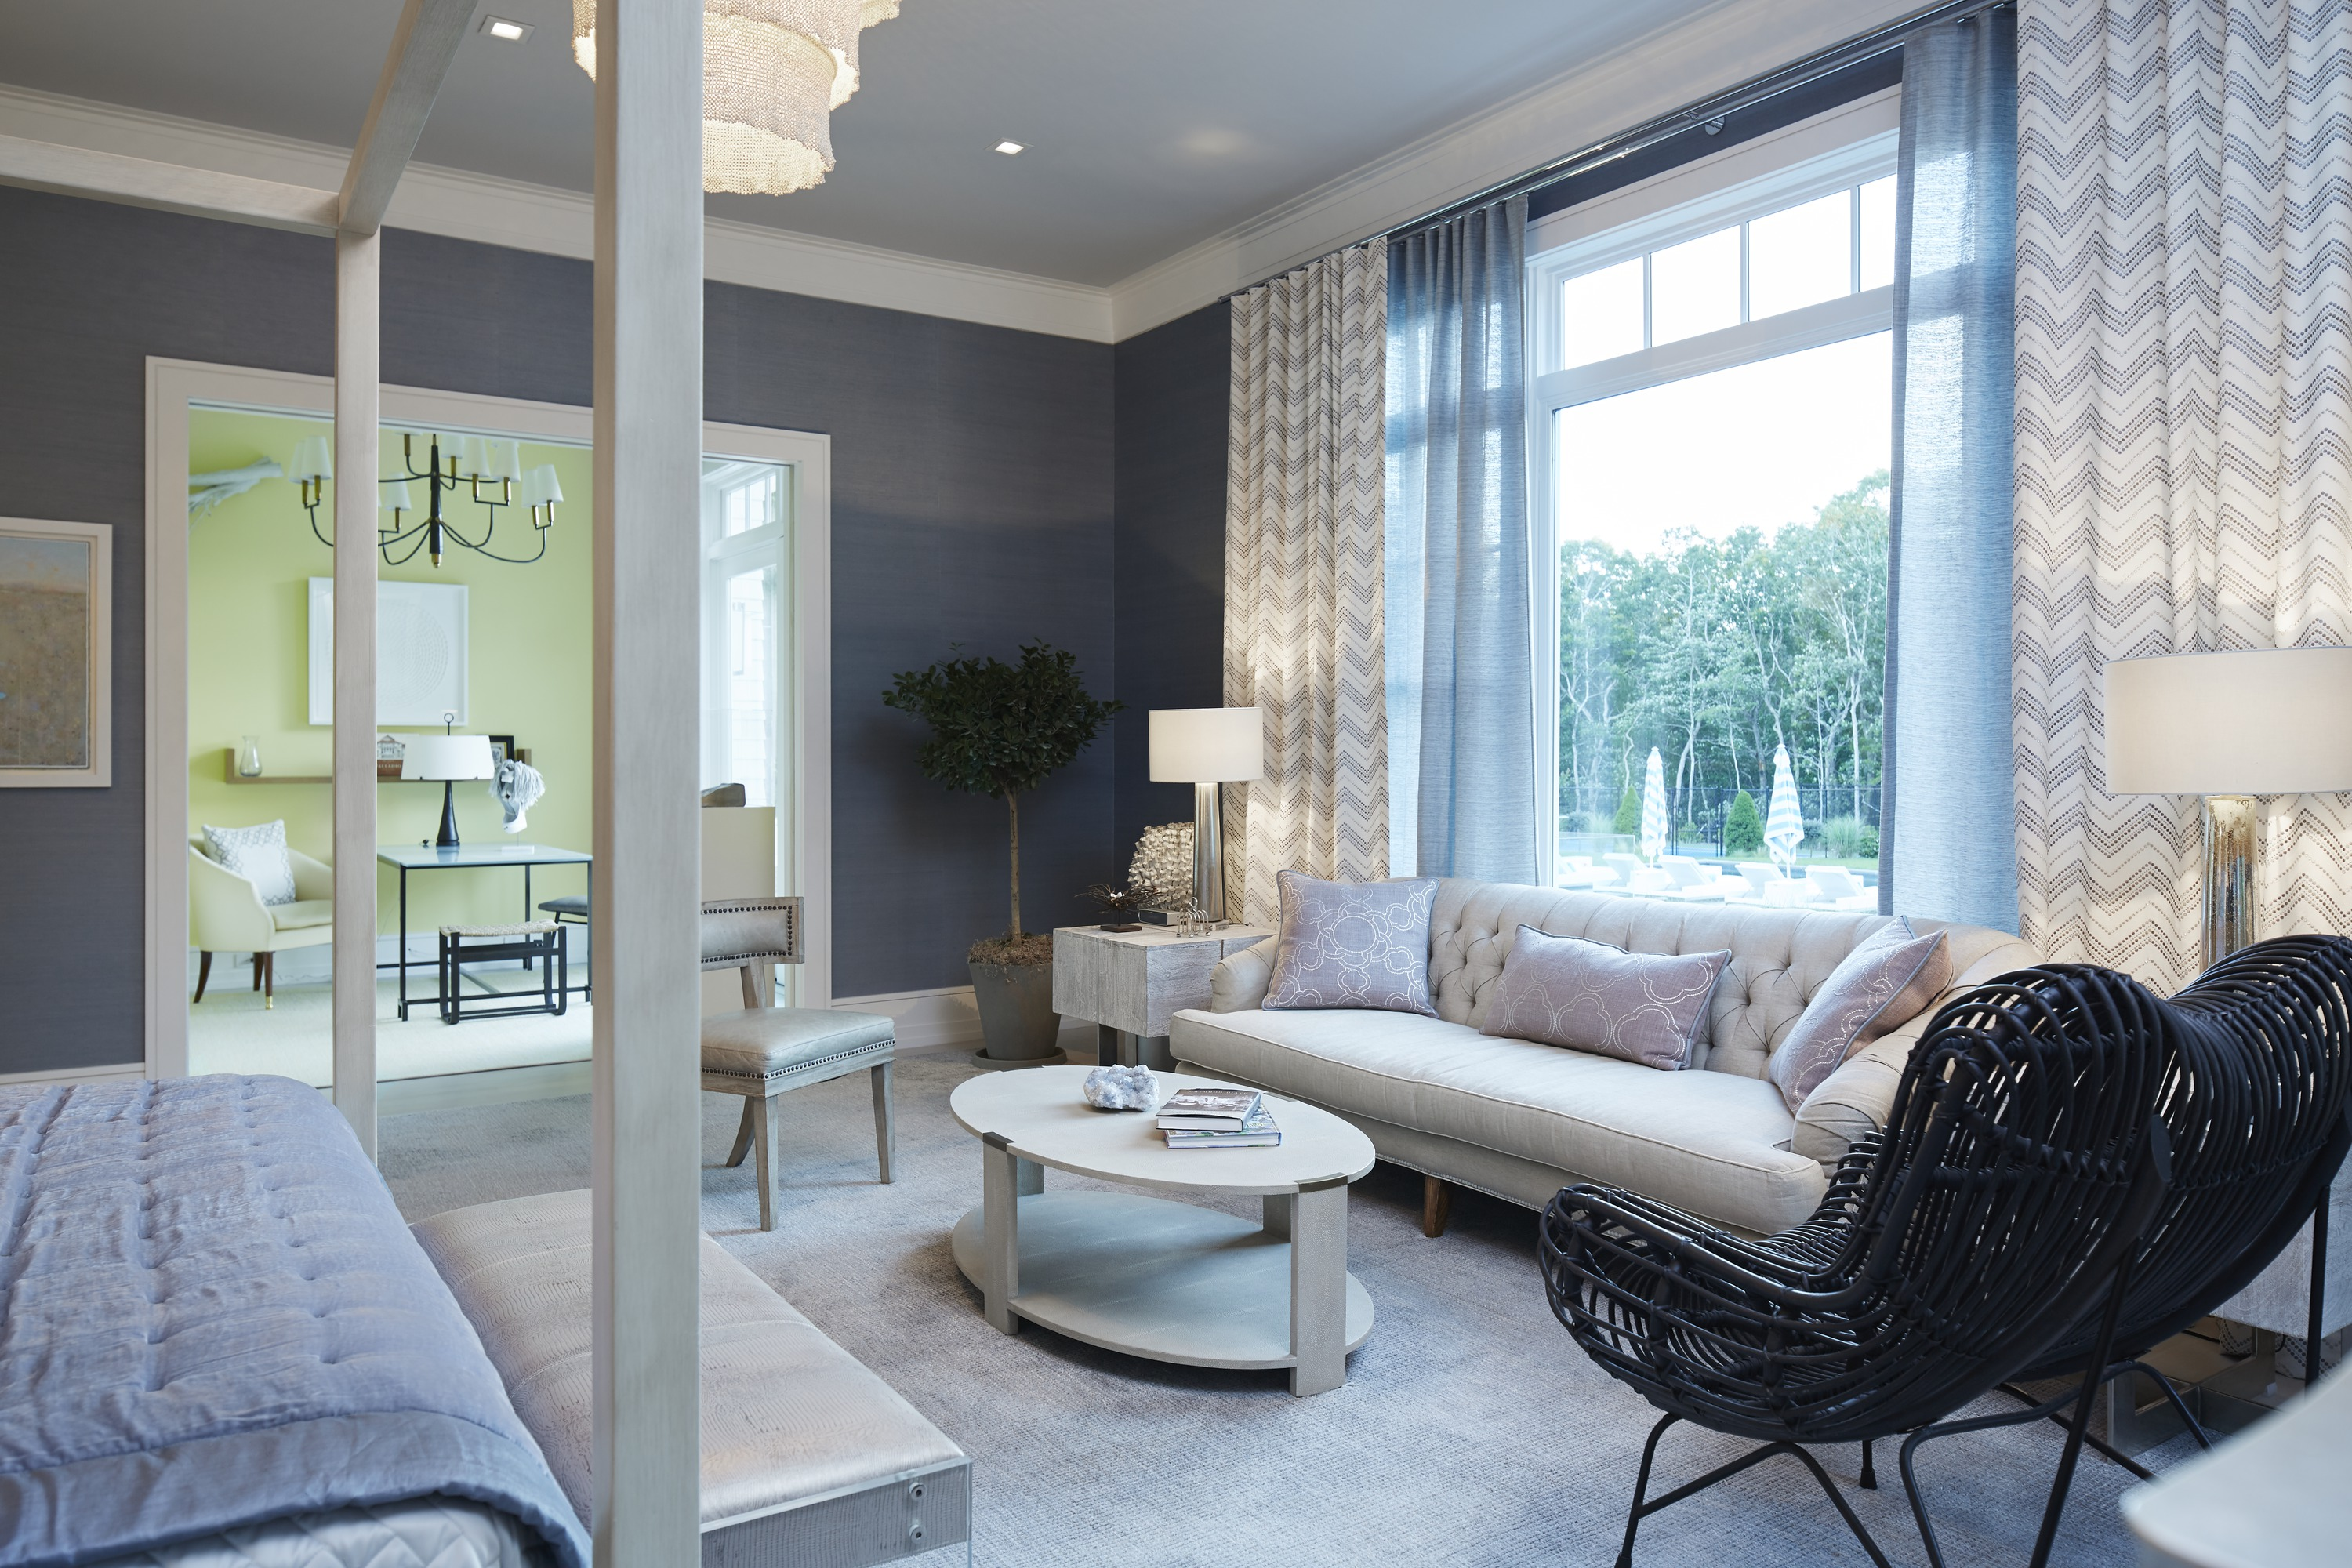 Adjoining the master bedroom, the sitting room by Kyle Roberts looks out to the pool and woods. With cheerful yellow walls, its an ideal spot for planning the day.